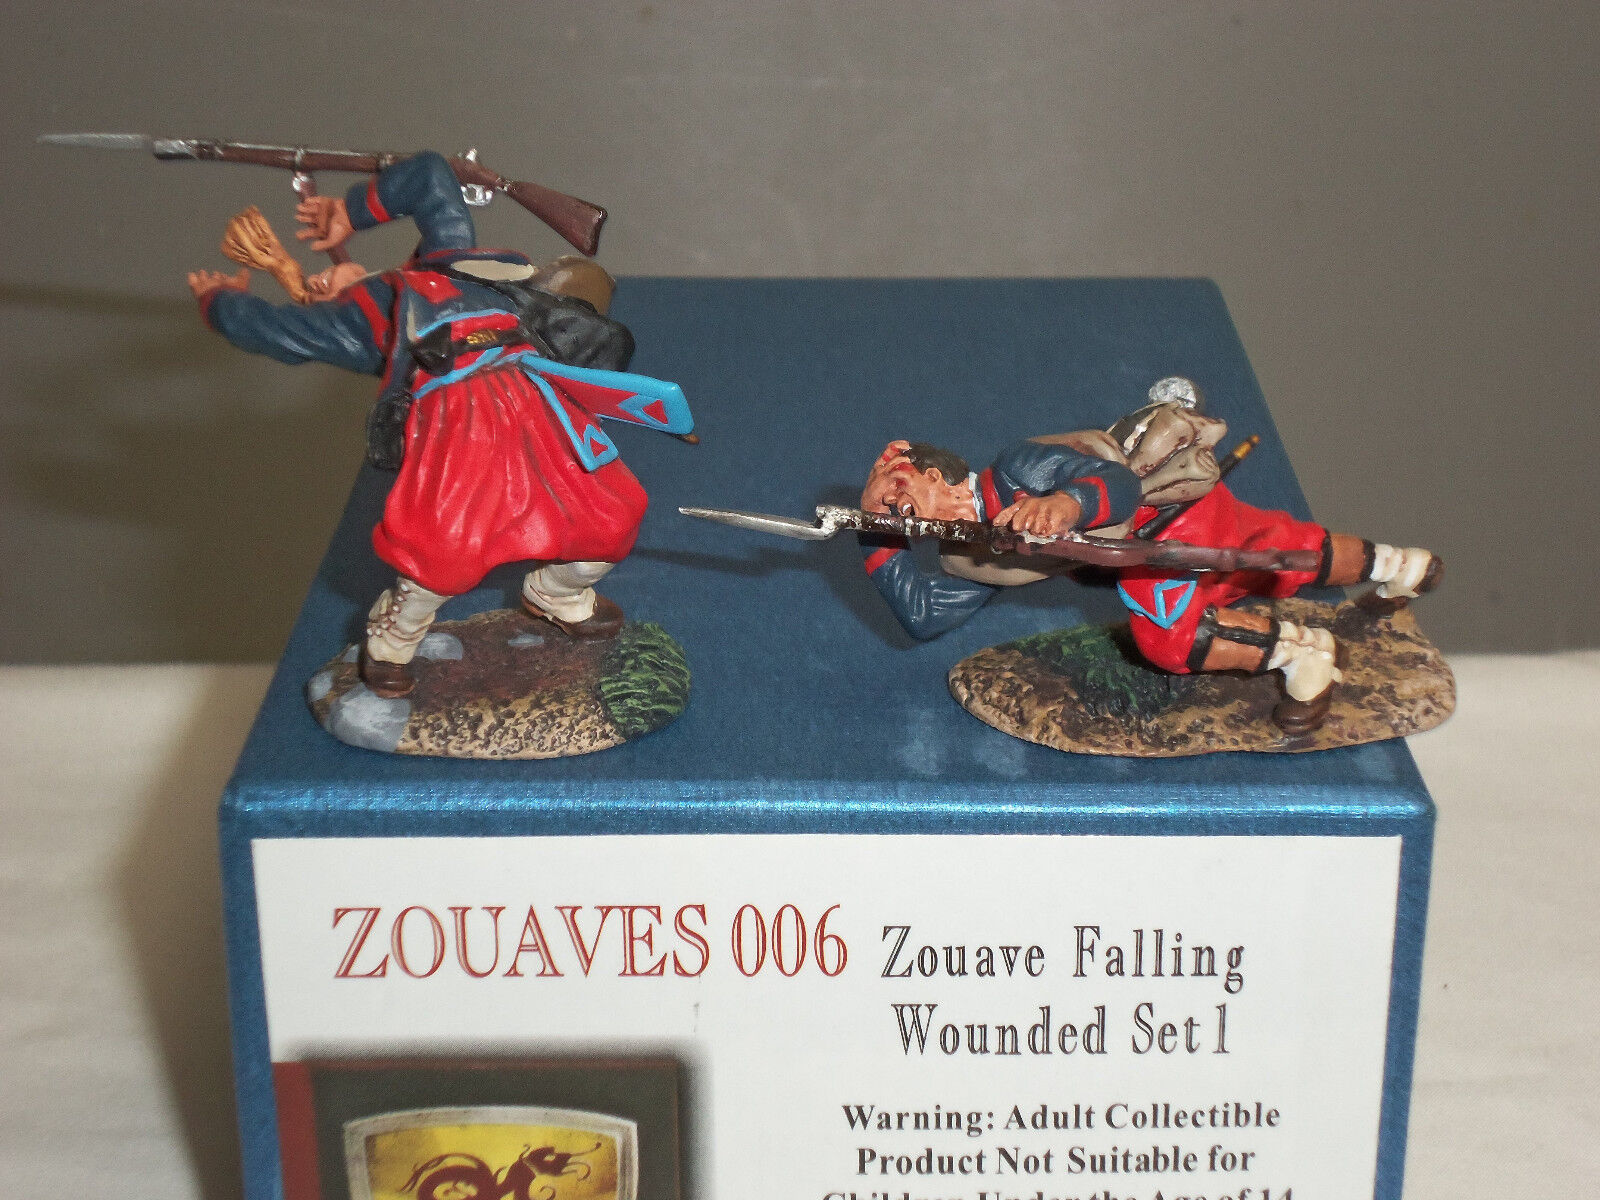 CONTE ZOUAVES006 ZOUAVES FALLING WOUNDED AMERICAN CIVIL WAR TOY SOLDIER SET 1